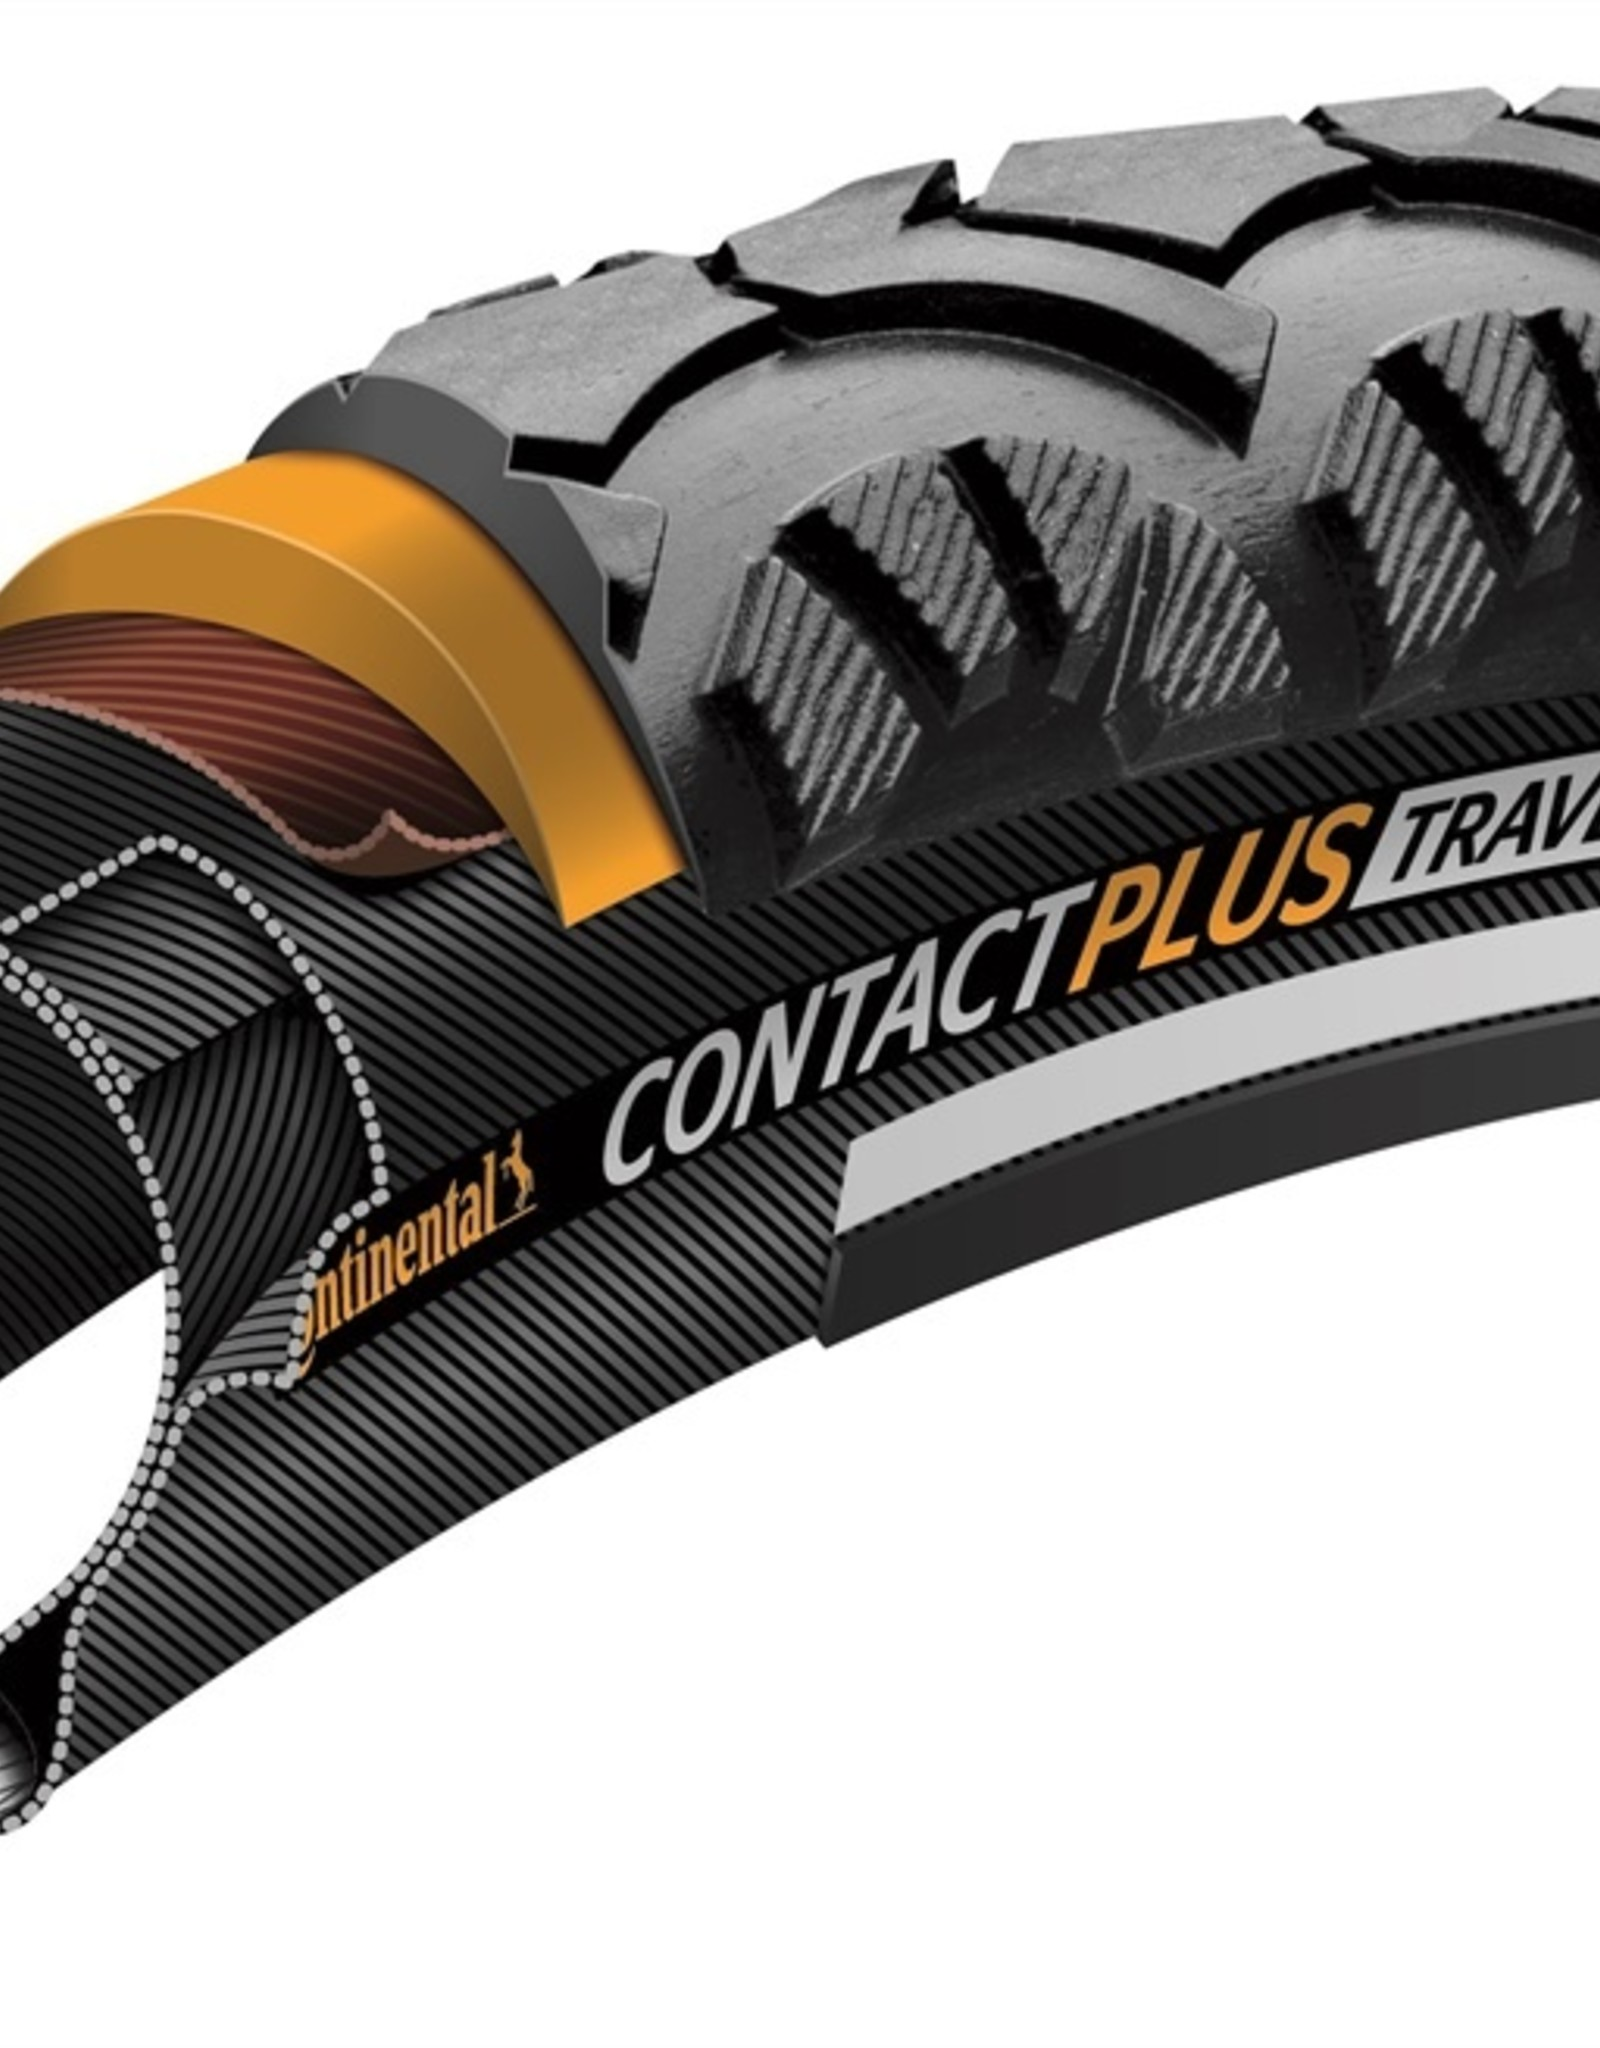 Continental Continental Contact Plus Travel 700 X 37 Reflex